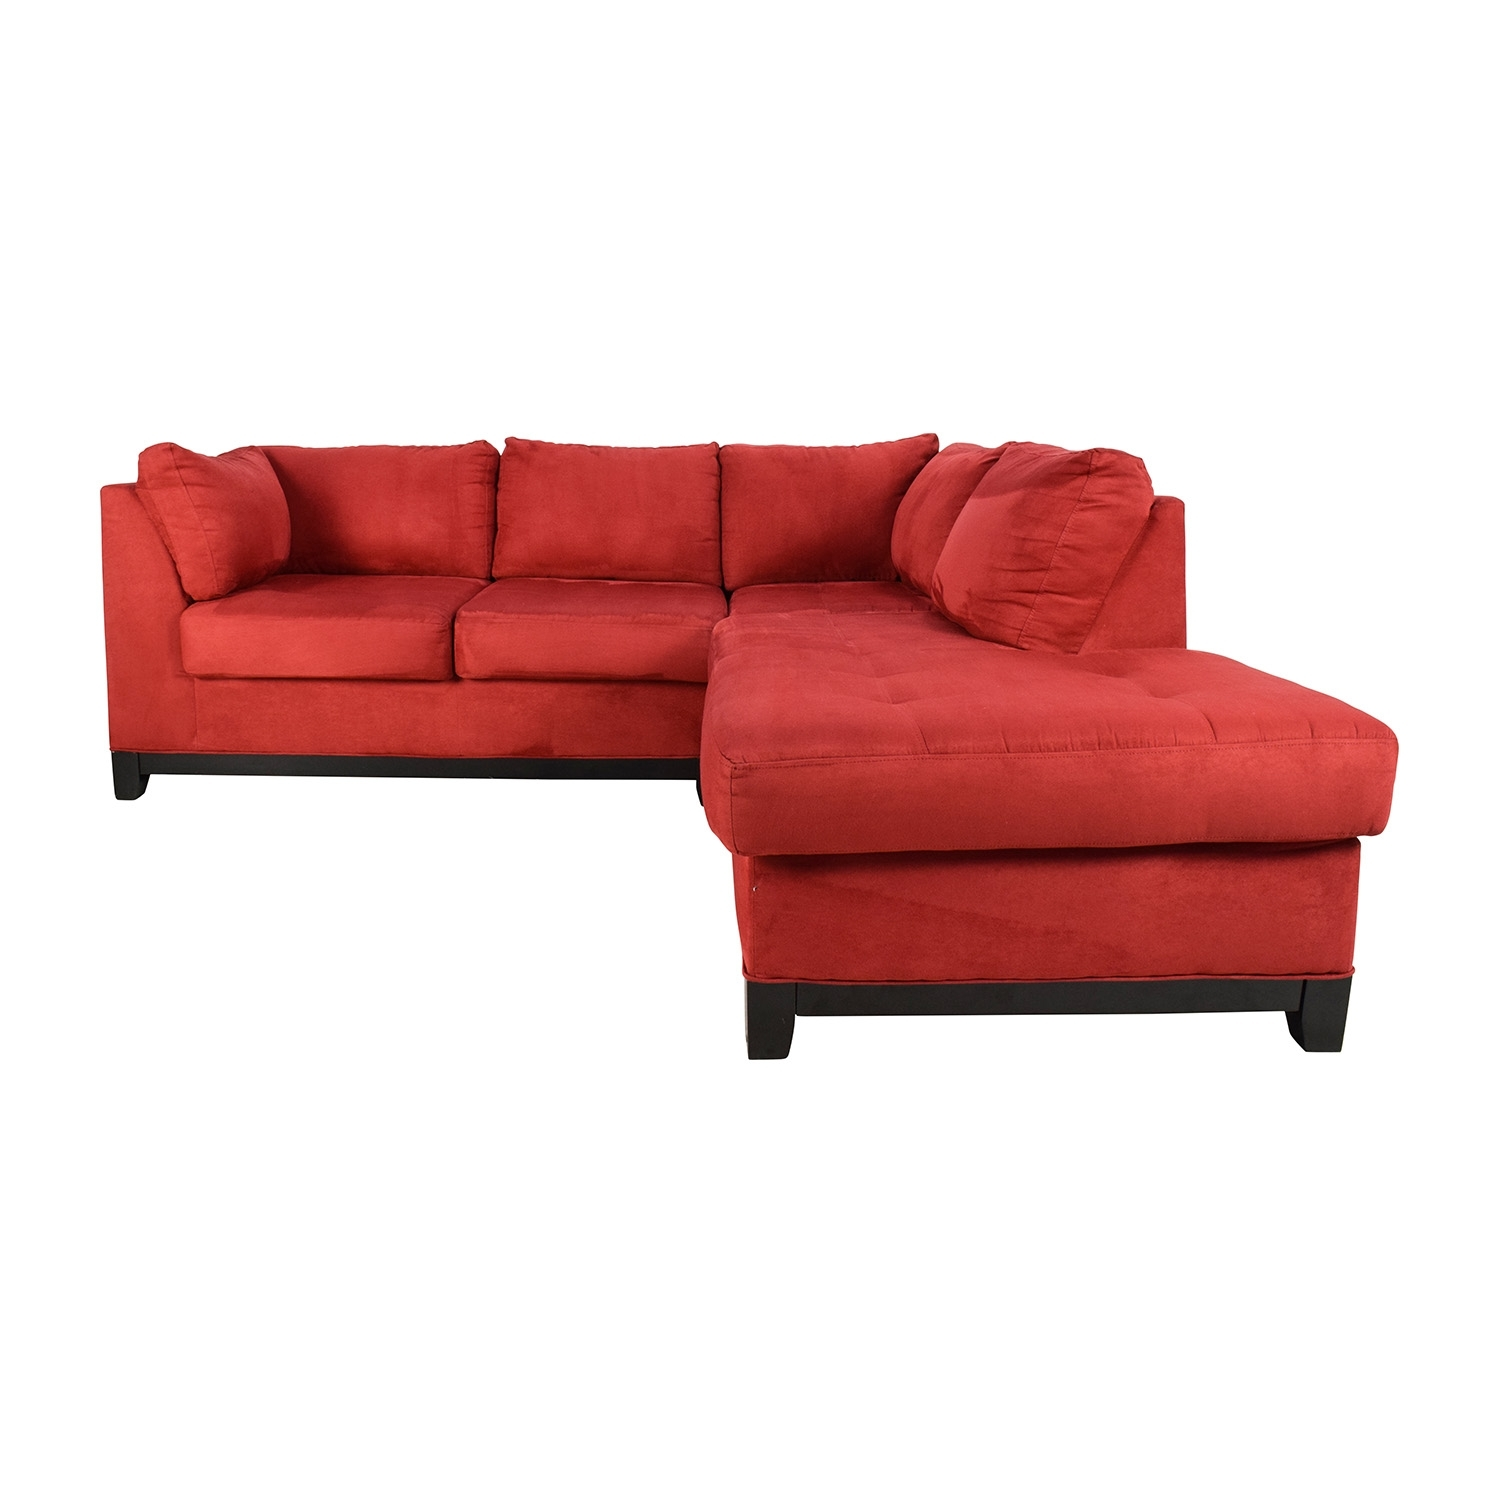 67% Off – Raymour And Flanigan Raymour & Flanigan Zella Red Intended For Raymour And Flanigan Sectional Sofas (View 3 of 10)